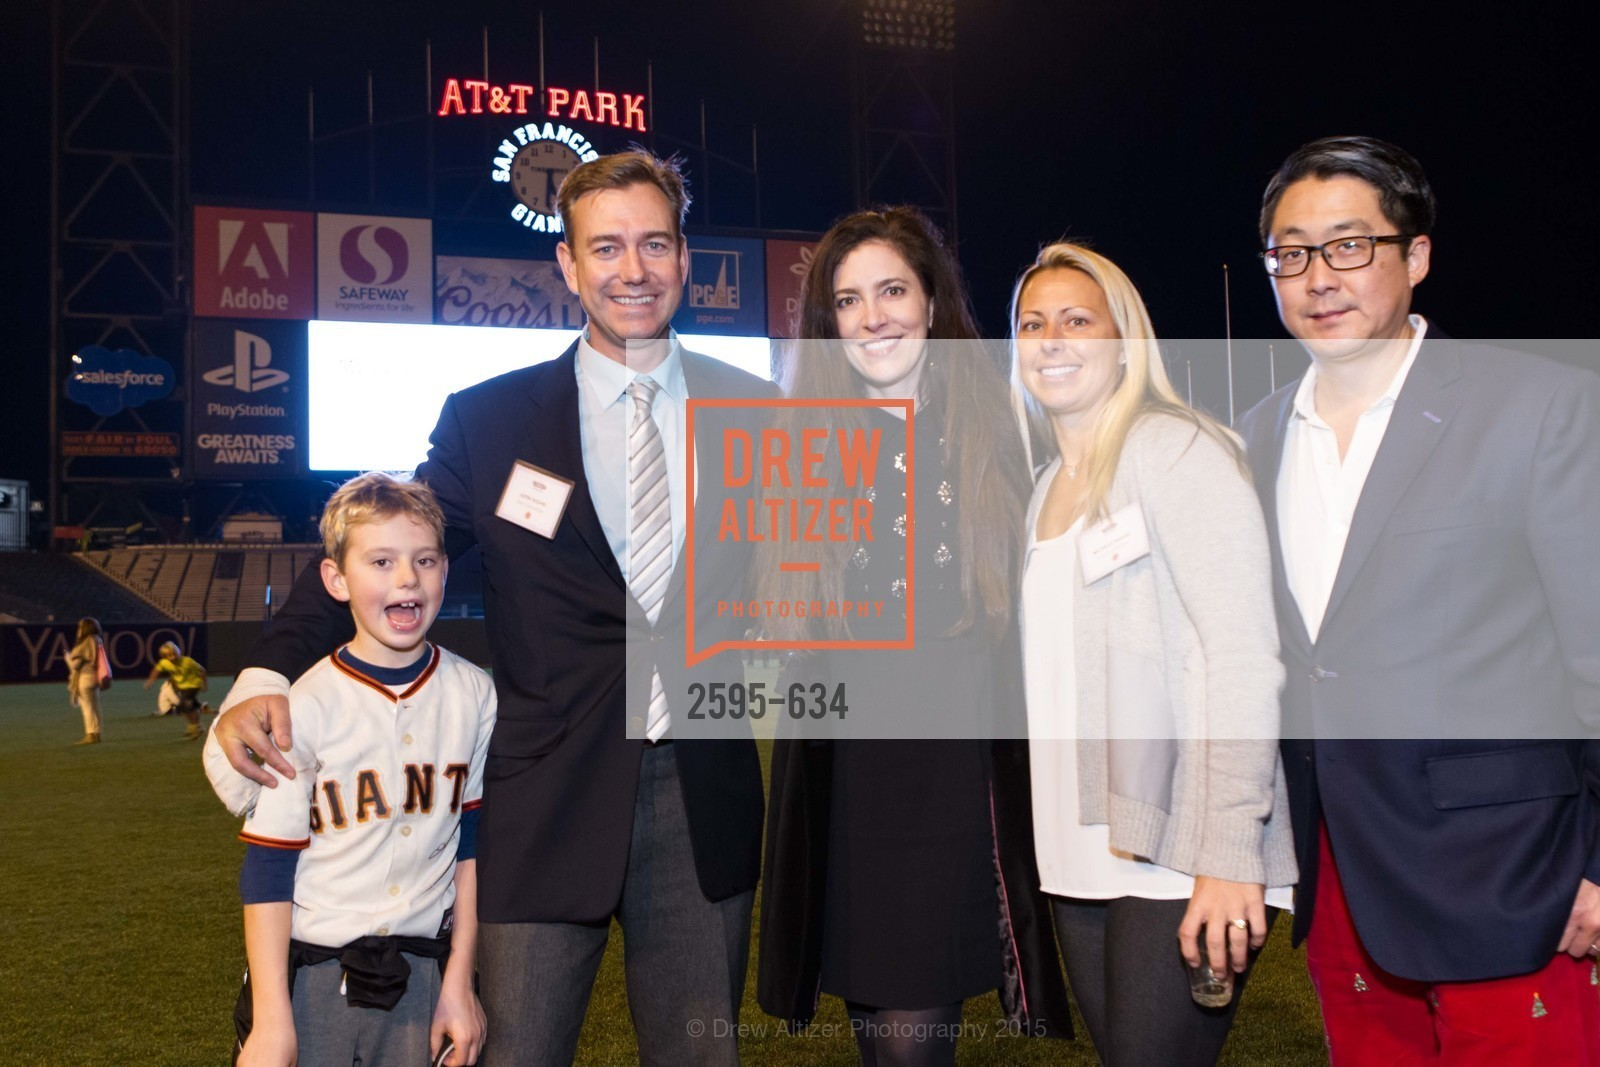 James Hughes, Justin Hughes, Letitia Kim, Michelle Hughes, Michael Kim, Holiday Heroes 2015, AT&T Park, December 7th, 2015,Drew Altizer, Drew Altizer Photography, full-service agency, private events, San Francisco photographer, photographer california